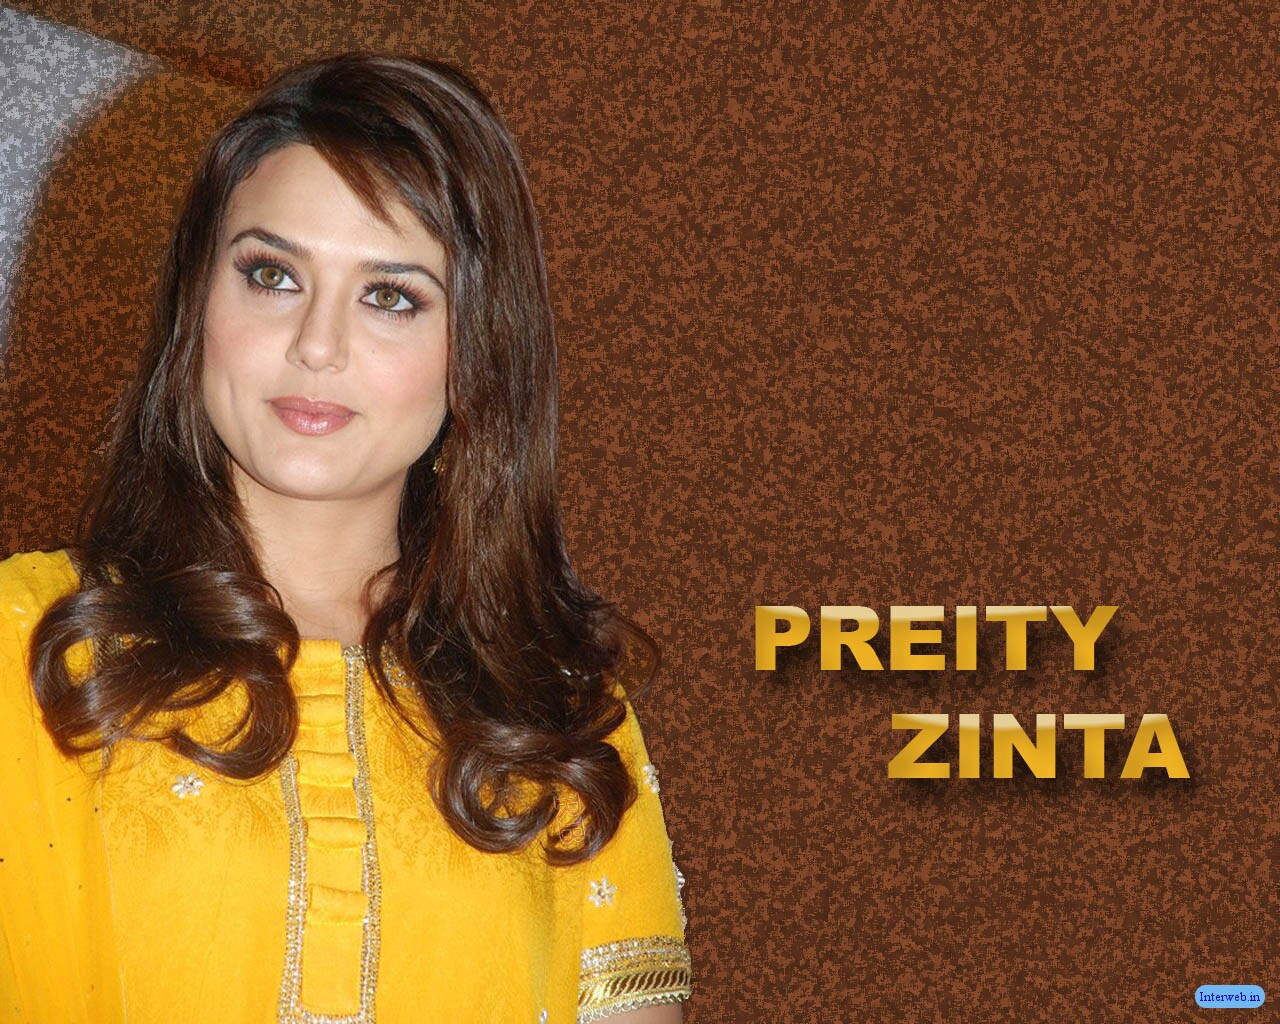 Wallpaper Preity Zinta Hot. 1280 x 1024.Hairstyles Girls Soccer